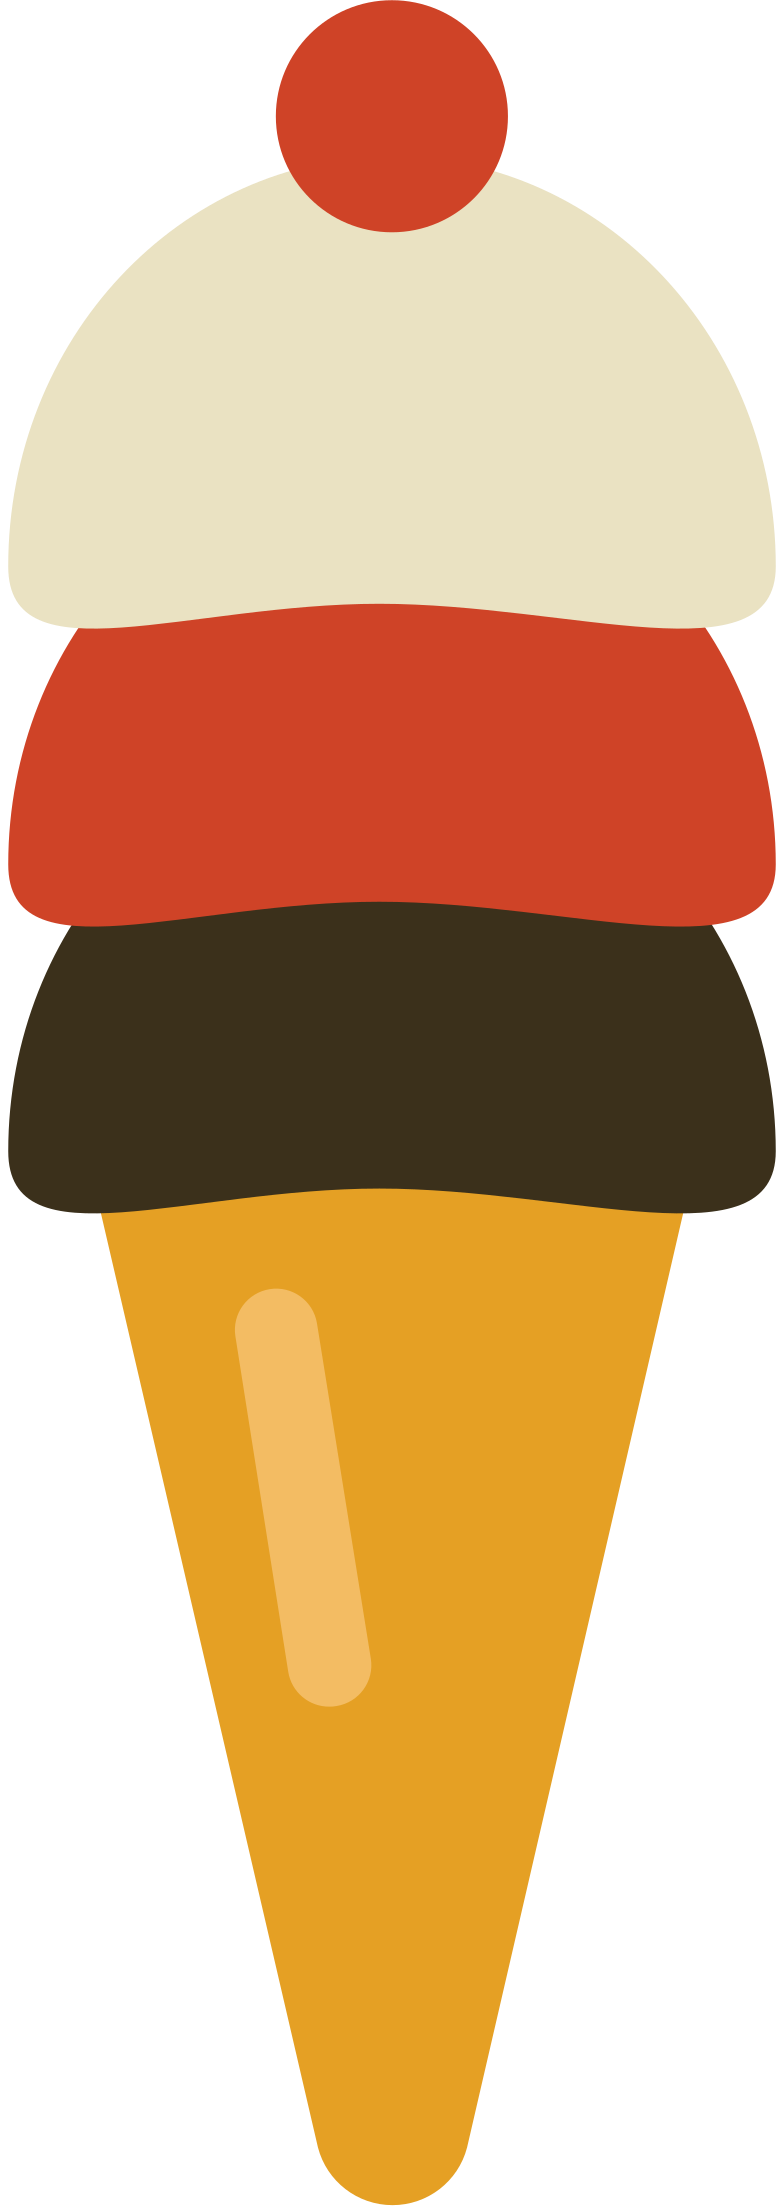 style ice cream cone Vector images in PNG and SVG | Icons8 Illustrations